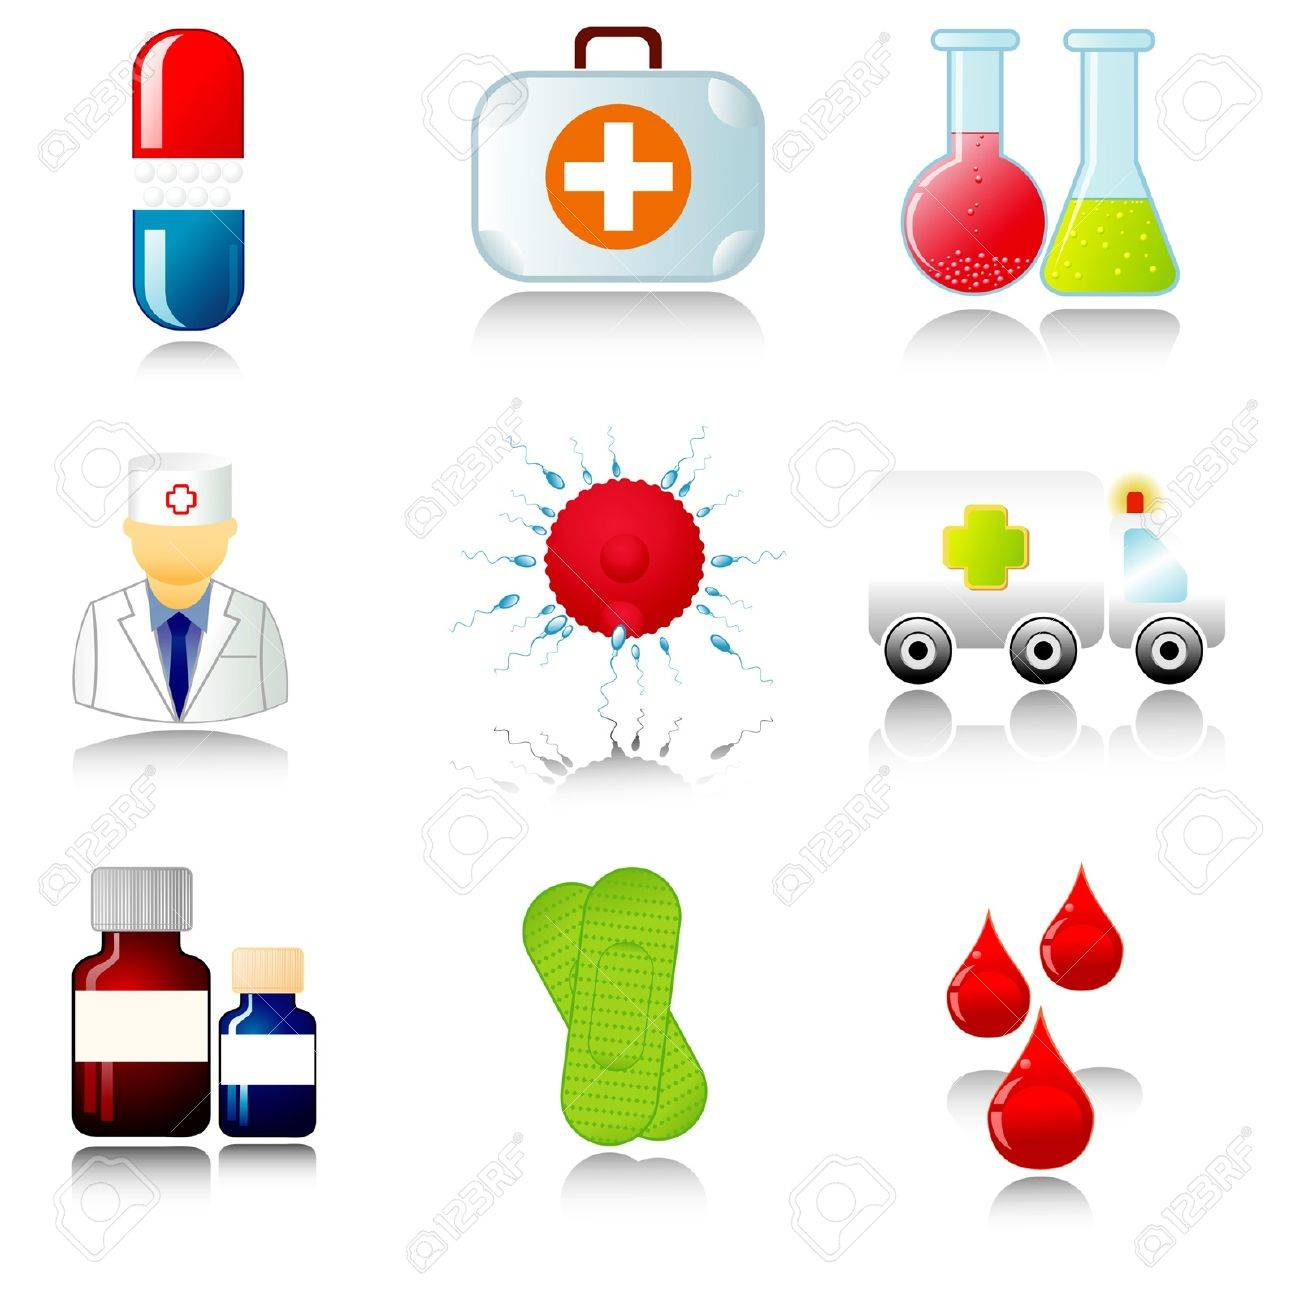 Set of medical icons. Vector illustration. Stock Vector - 9918763